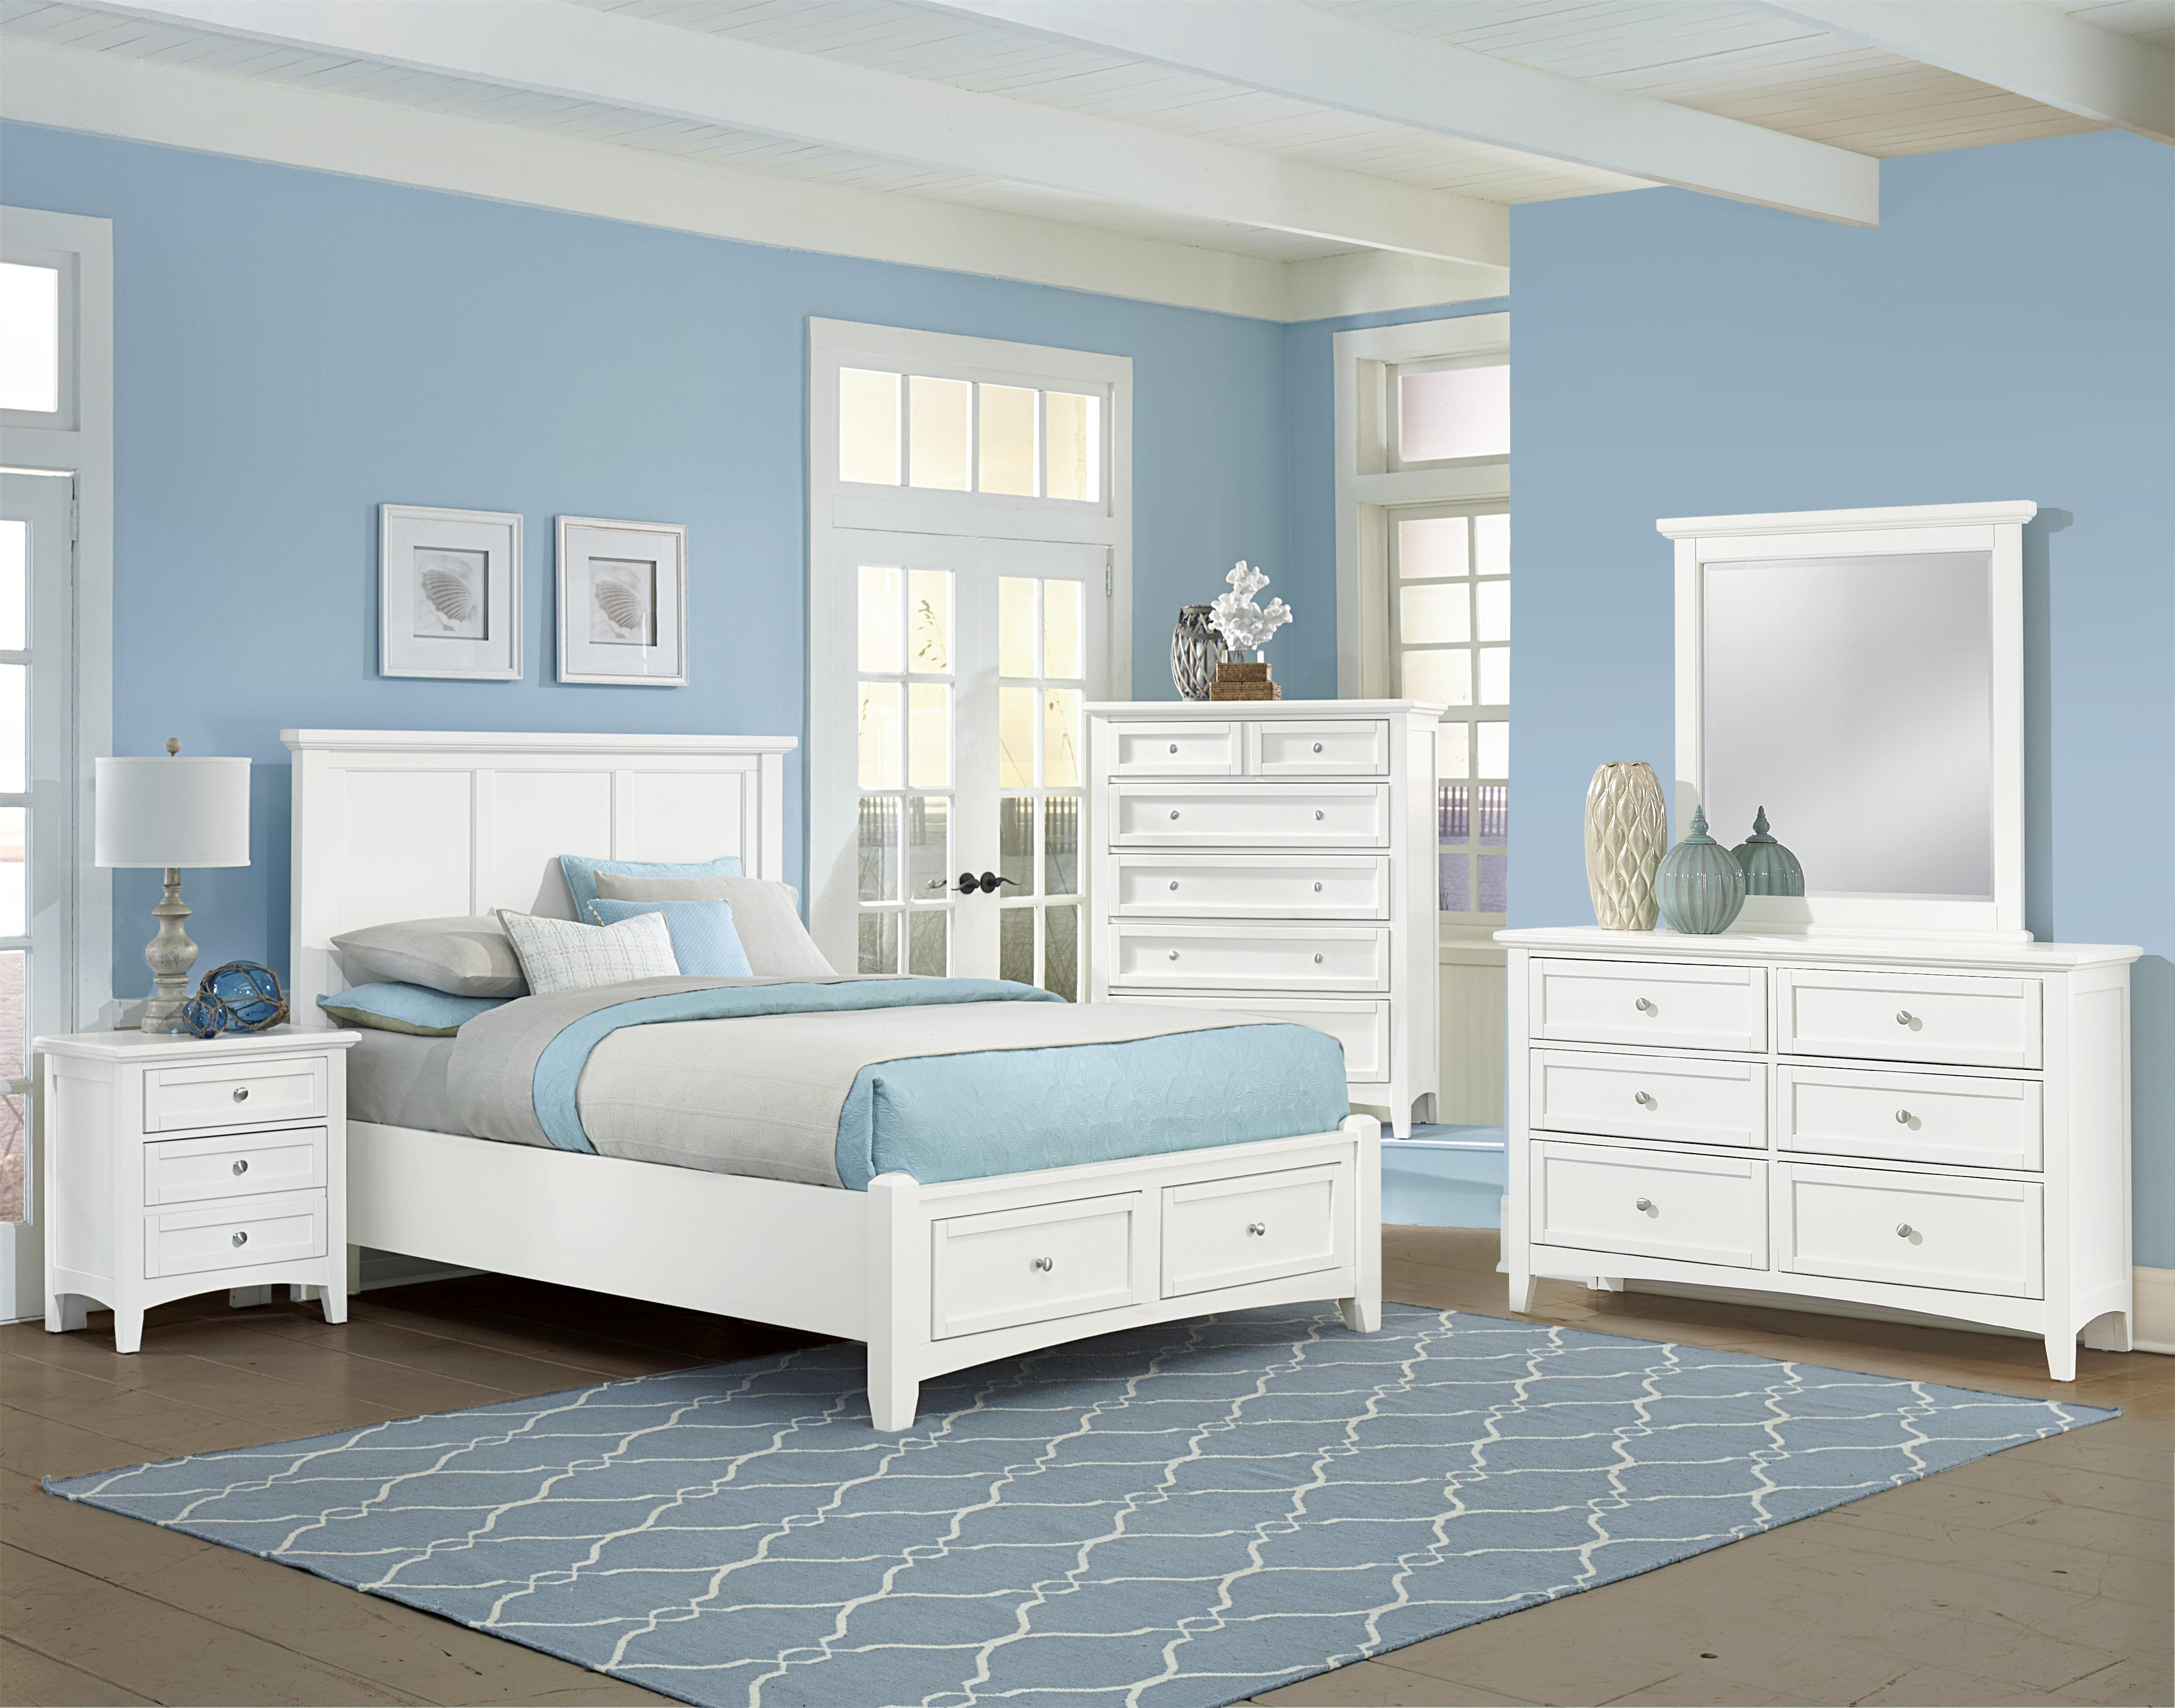 Bonanza Queen Bedroom Group by Vaughan Bassett at H.L. Stephens